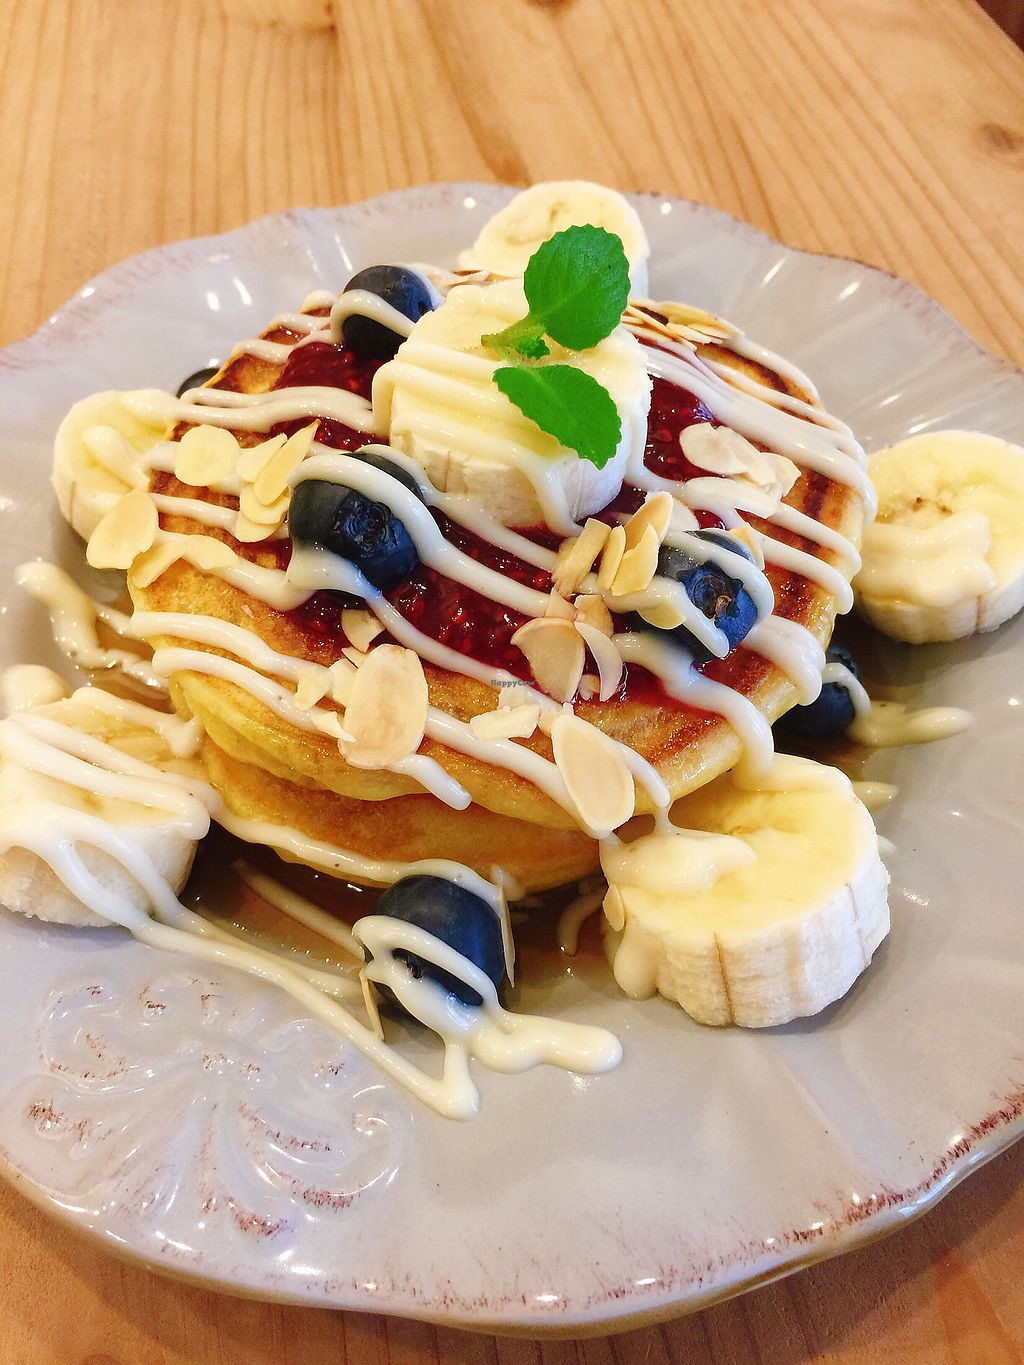 """Photo of Green Bakery  by <a href=""""/members/profile/IsabellaVTsao"""">IsabellaVTsao</a> <br/>Vegan pancake  <br/> July 11, 2017  - <a href='/contact/abuse/image/60768/279163'>Report</a>"""